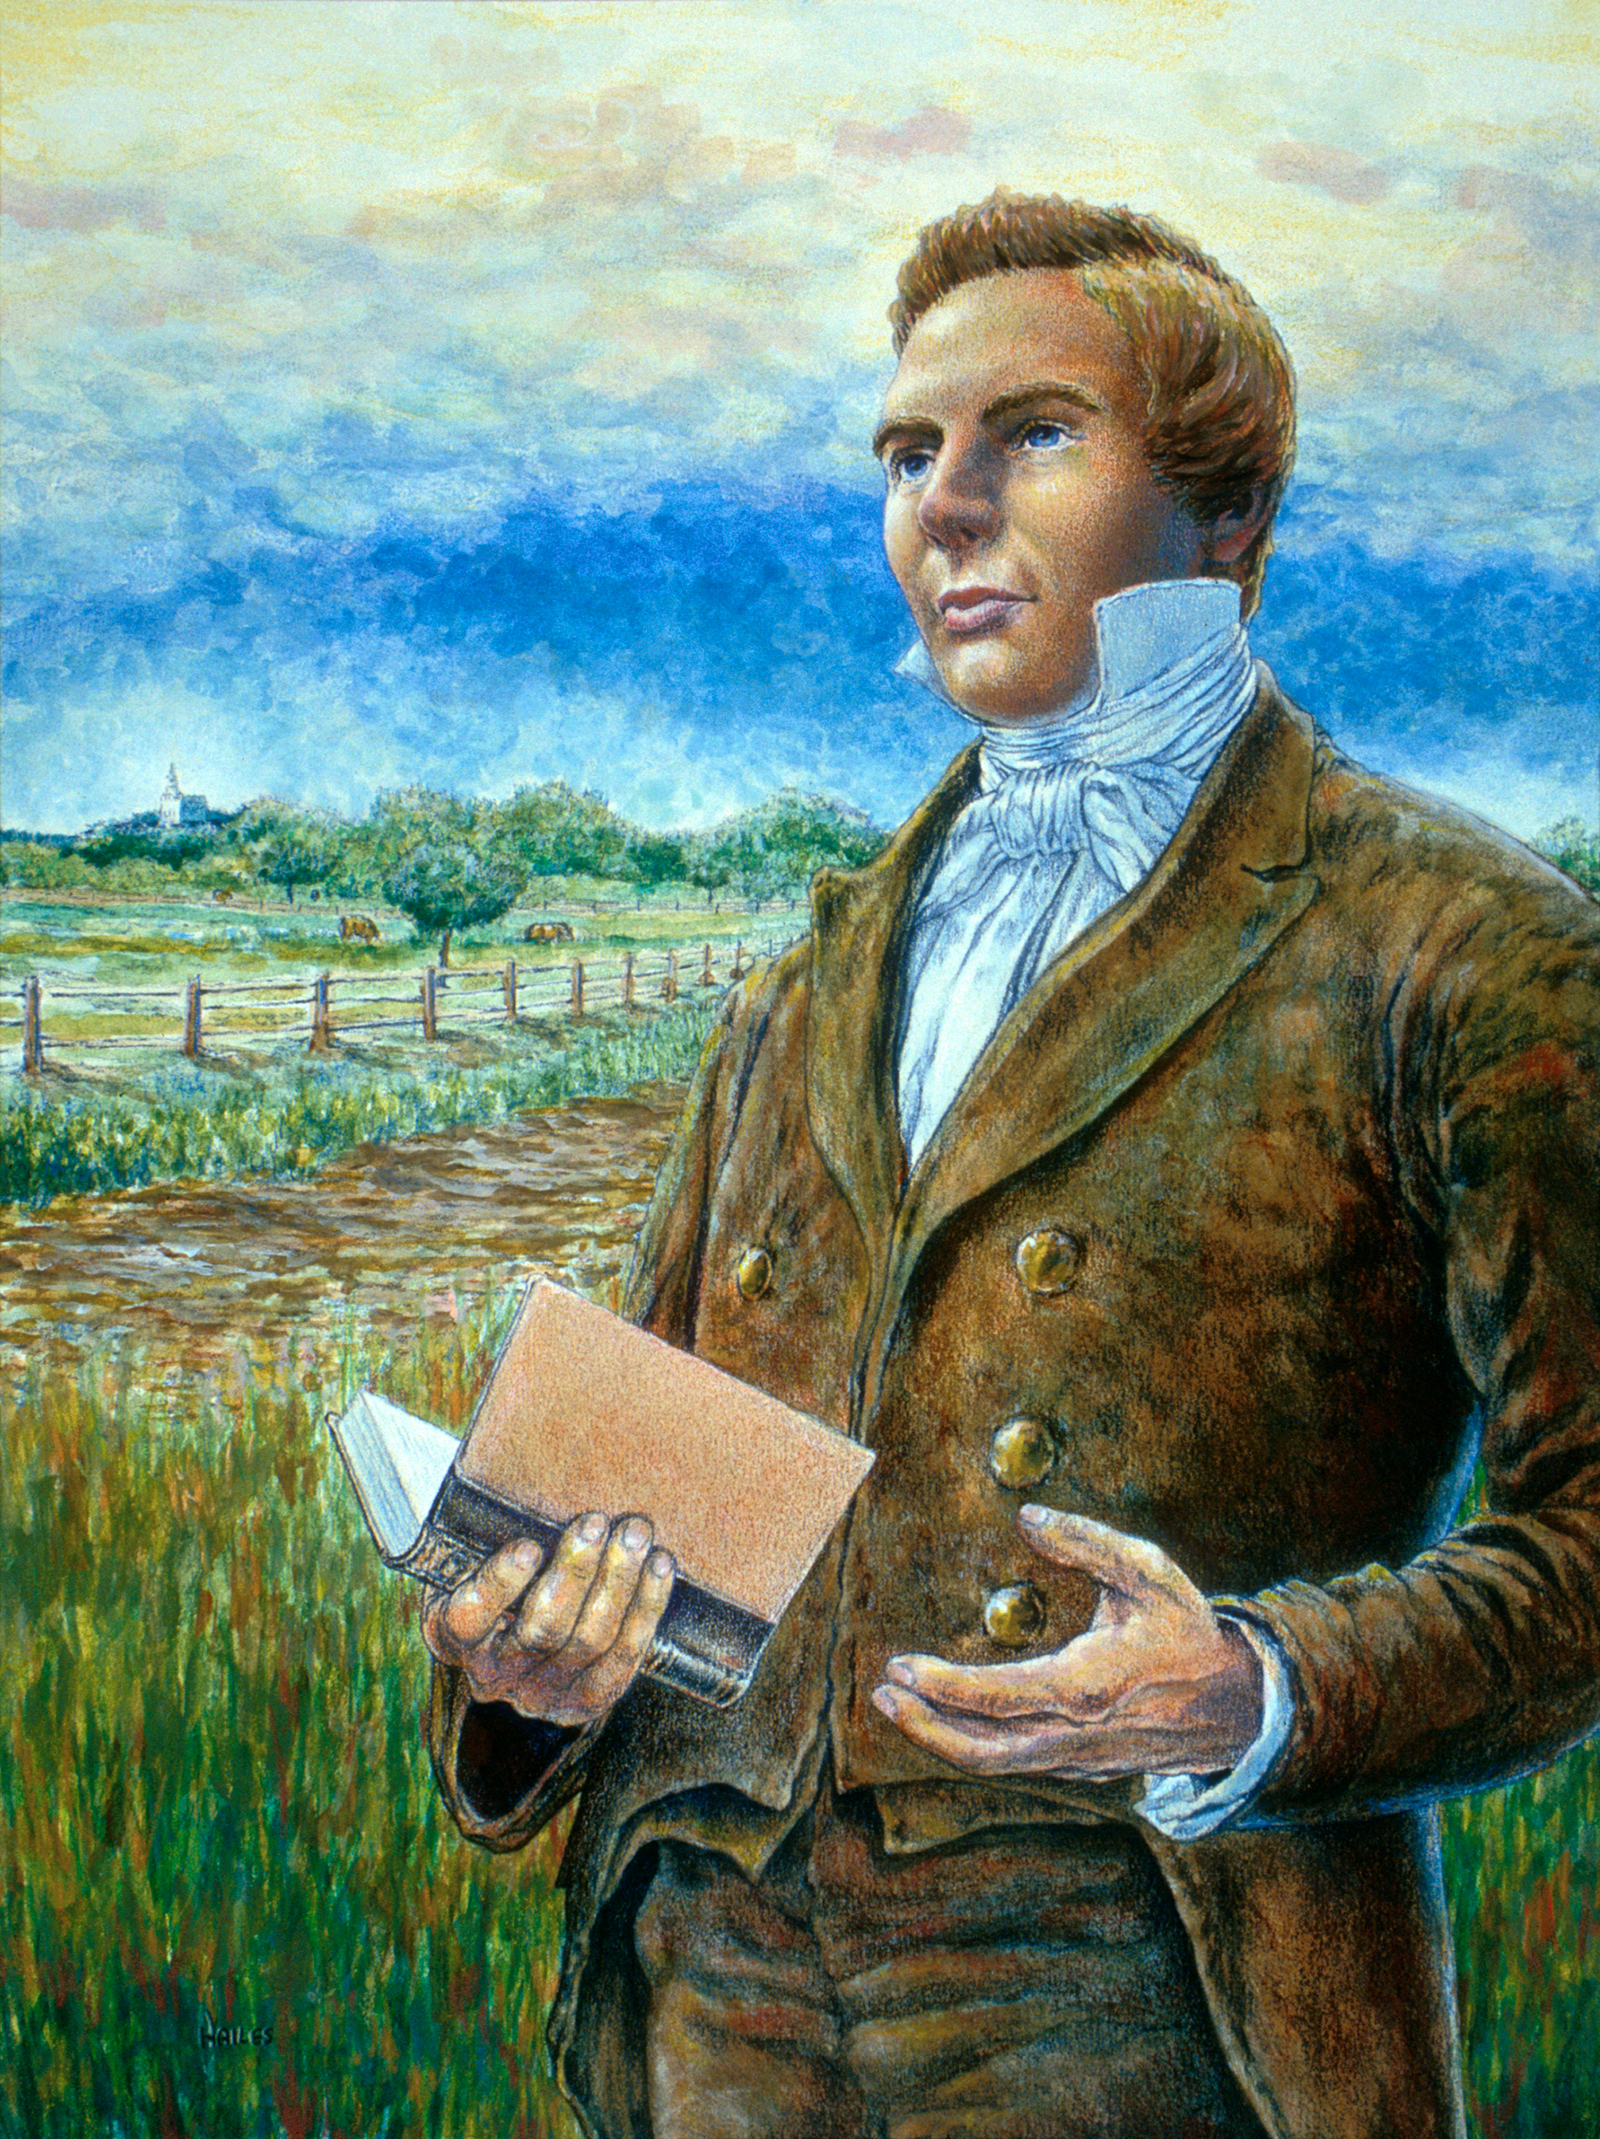 New Mormon essay: Joseph Smith married teens, other men's wives